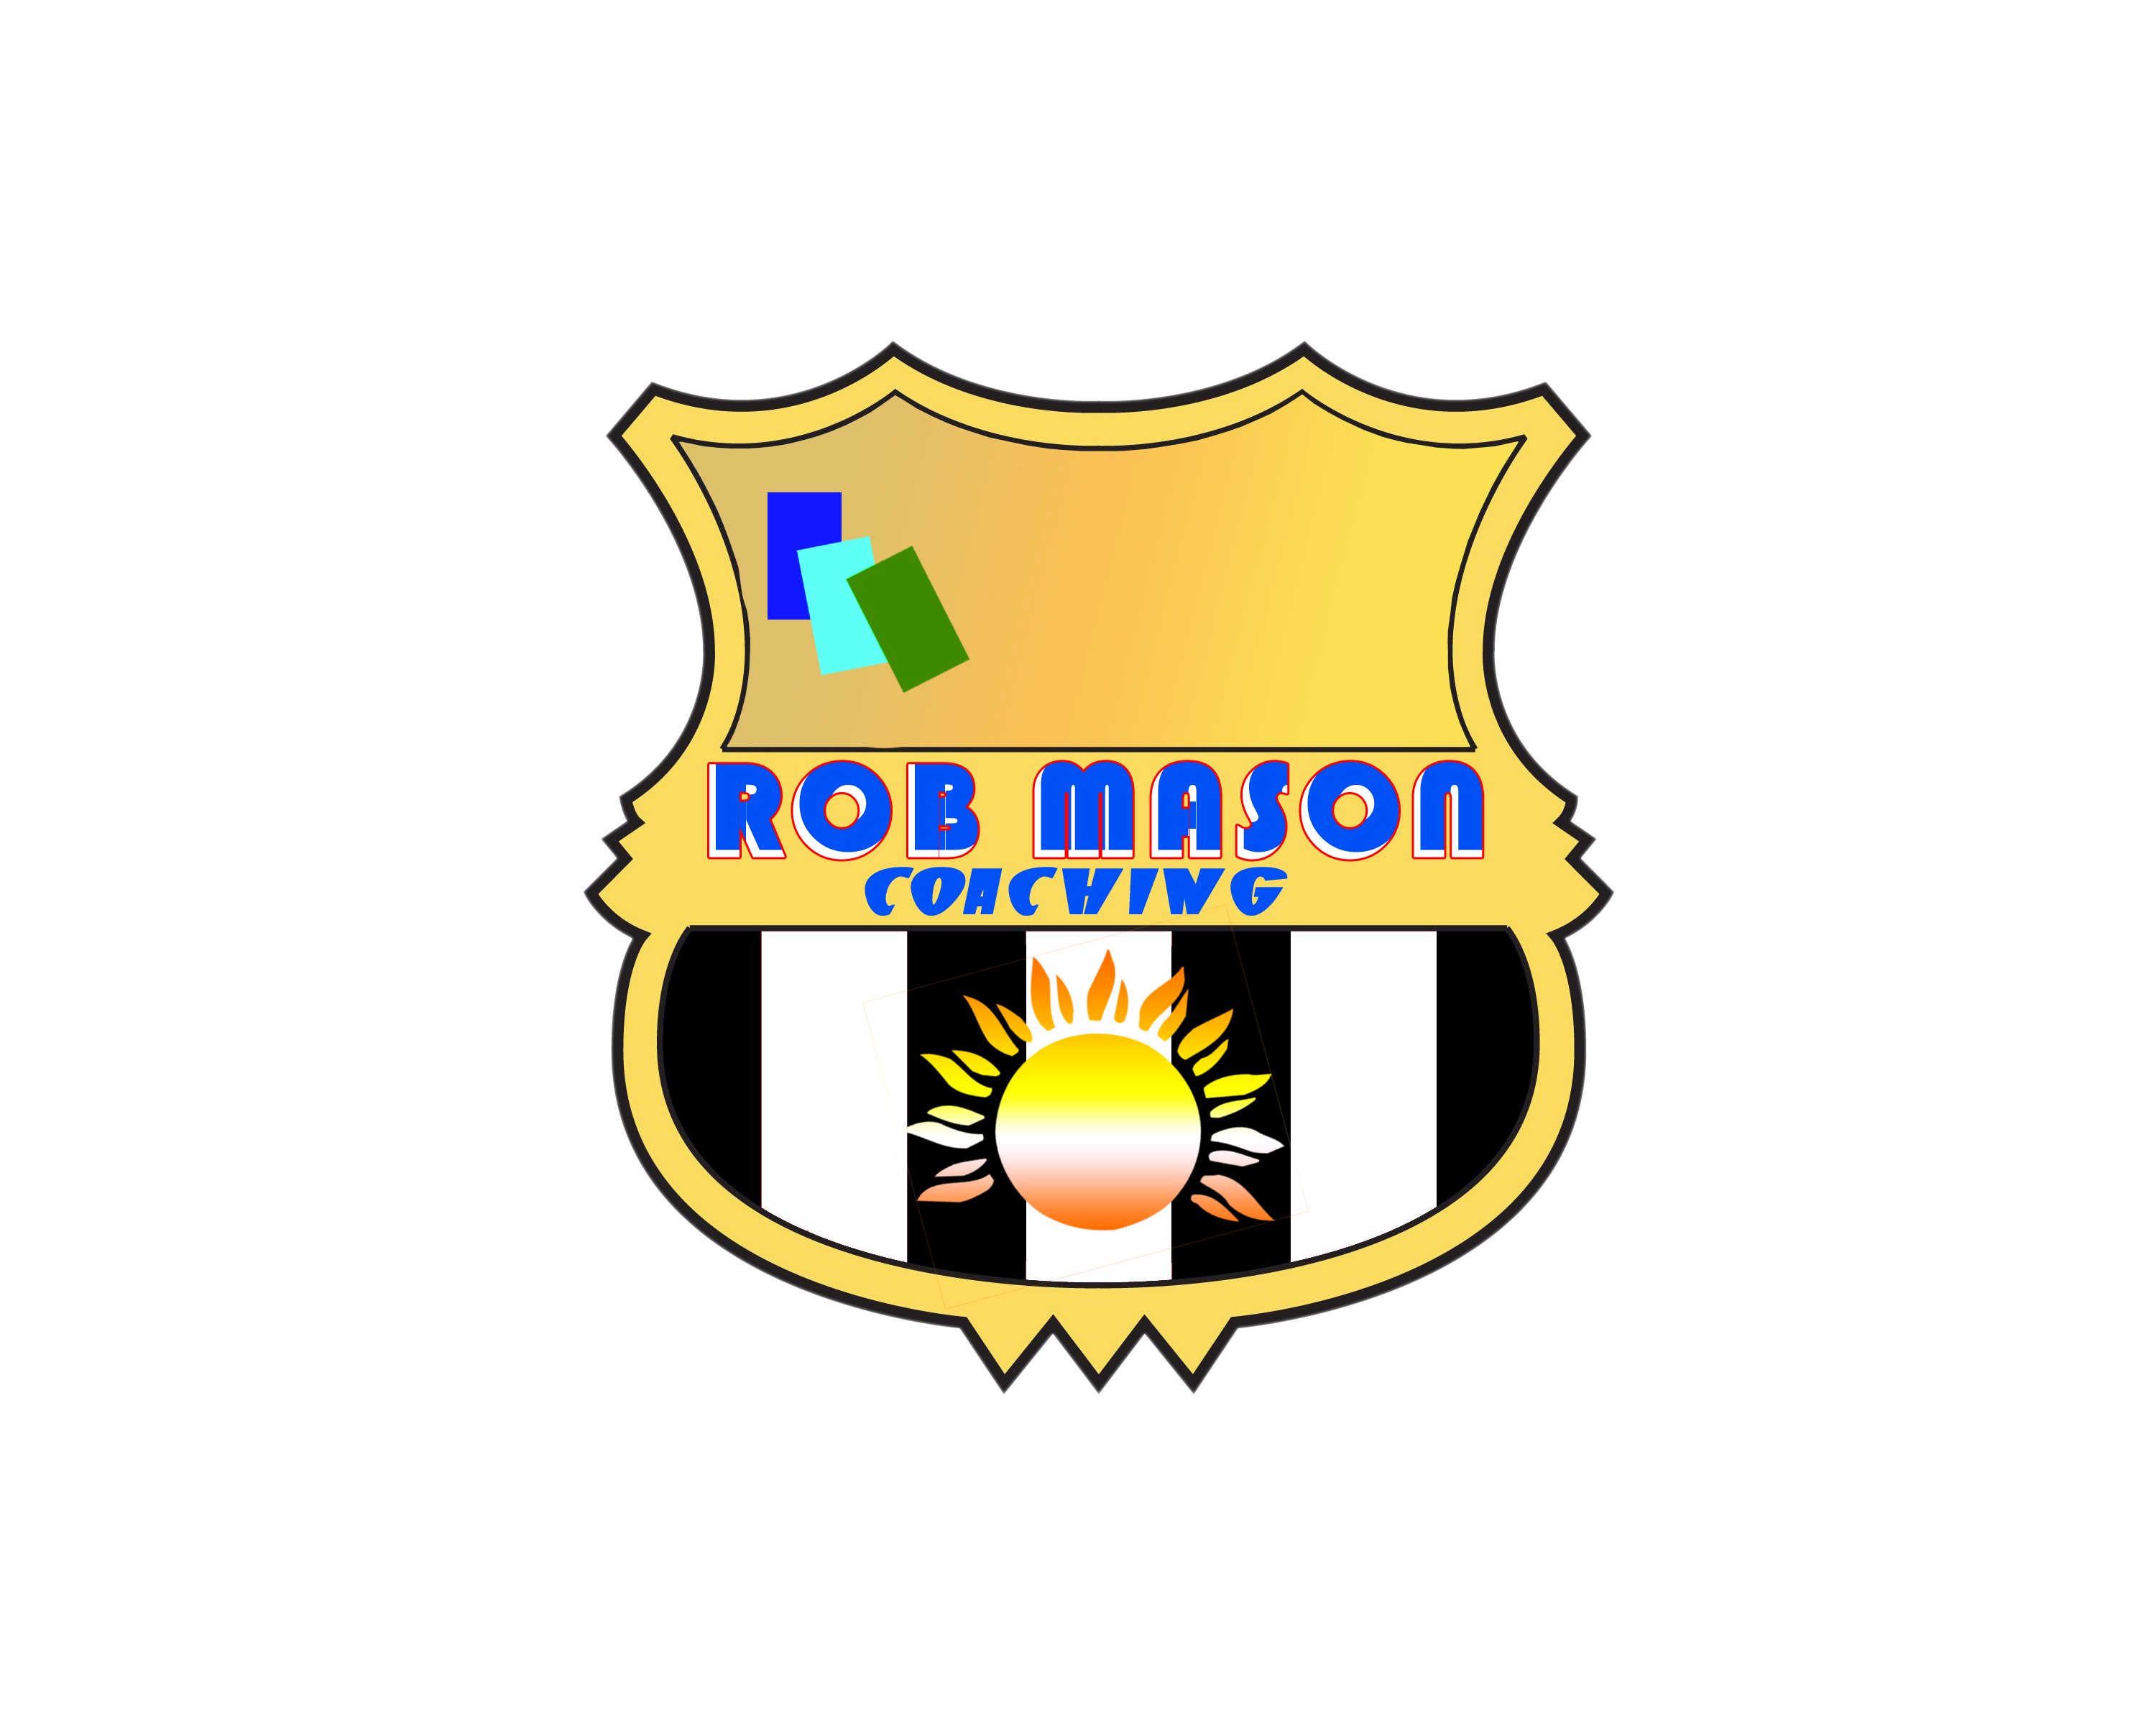 Logo Design by Arun David - Entry No. 52 in the Logo Design Contest New Logo Design Needed for Exciting Company Rob Mason Coaching.